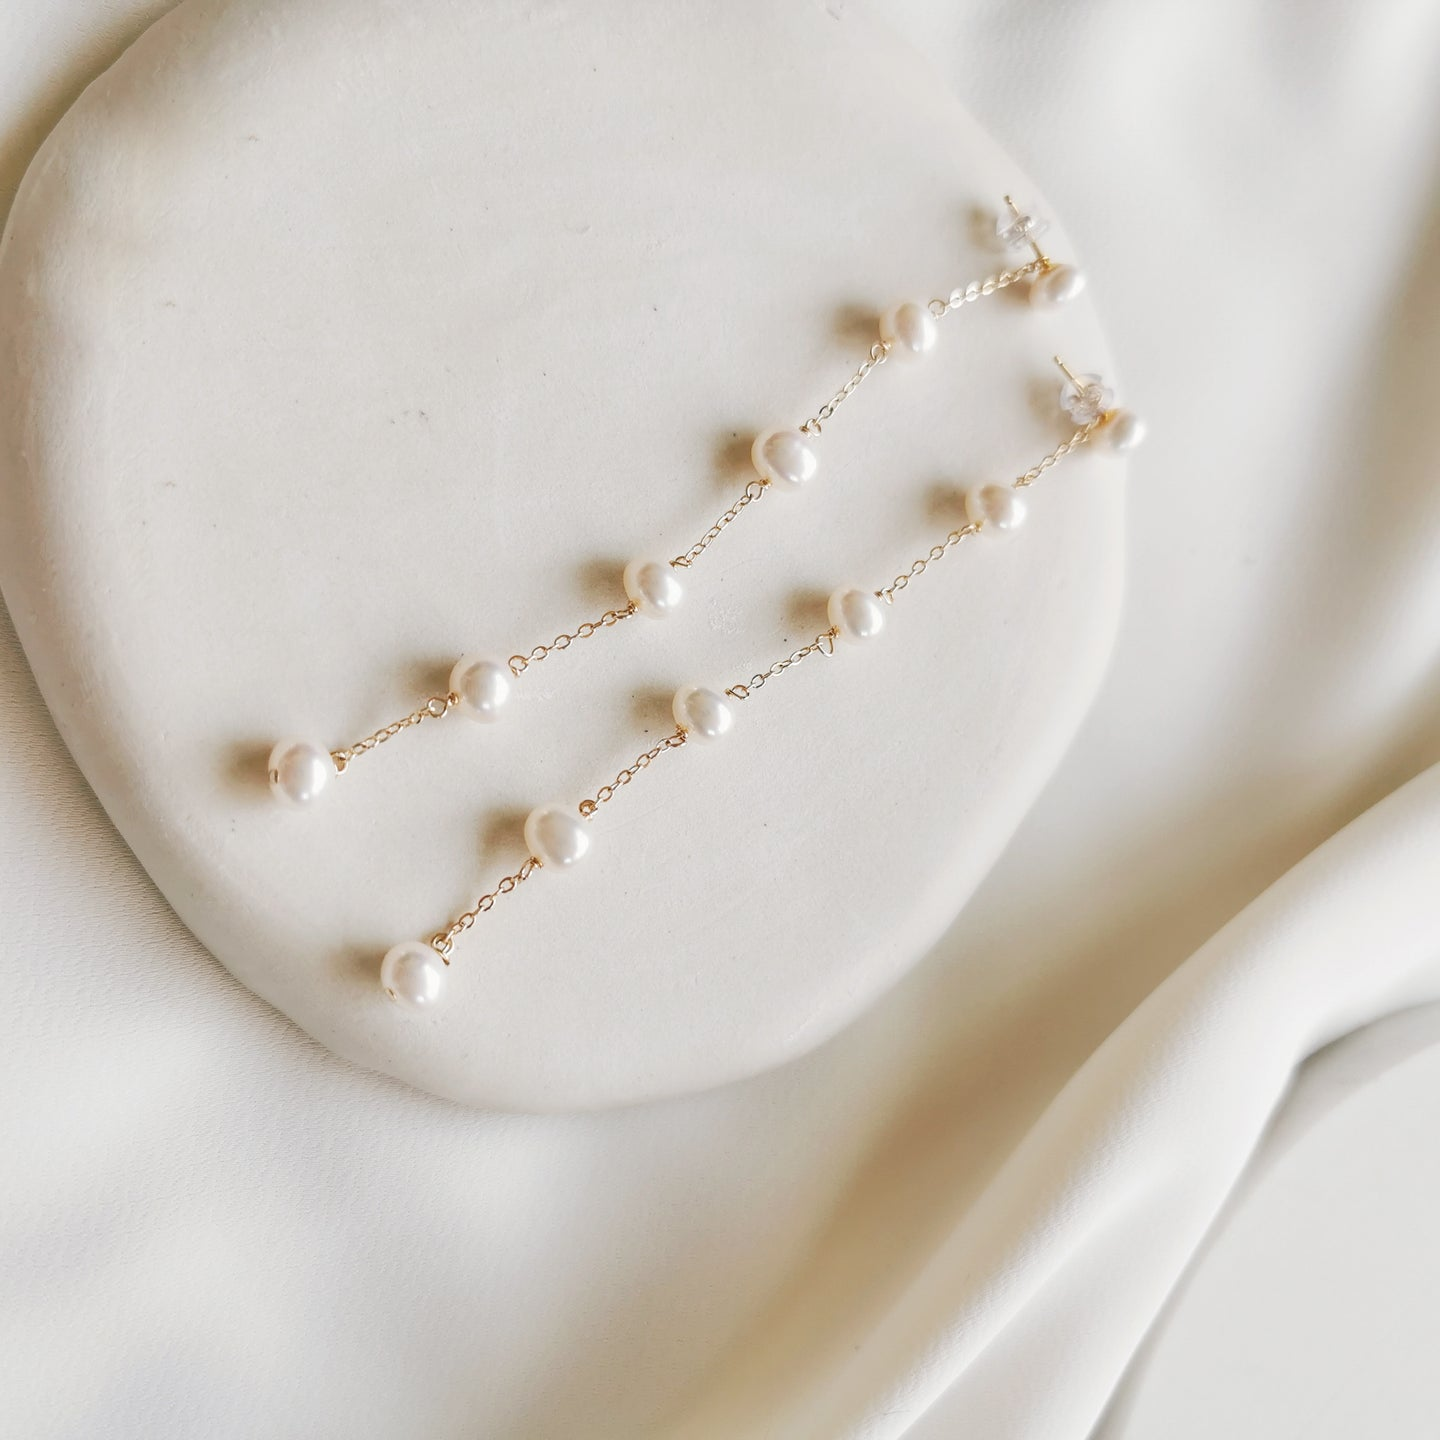 freshwater pearl charms with gold plated chain necklace, pearl necklace, gold necklace, gold charm